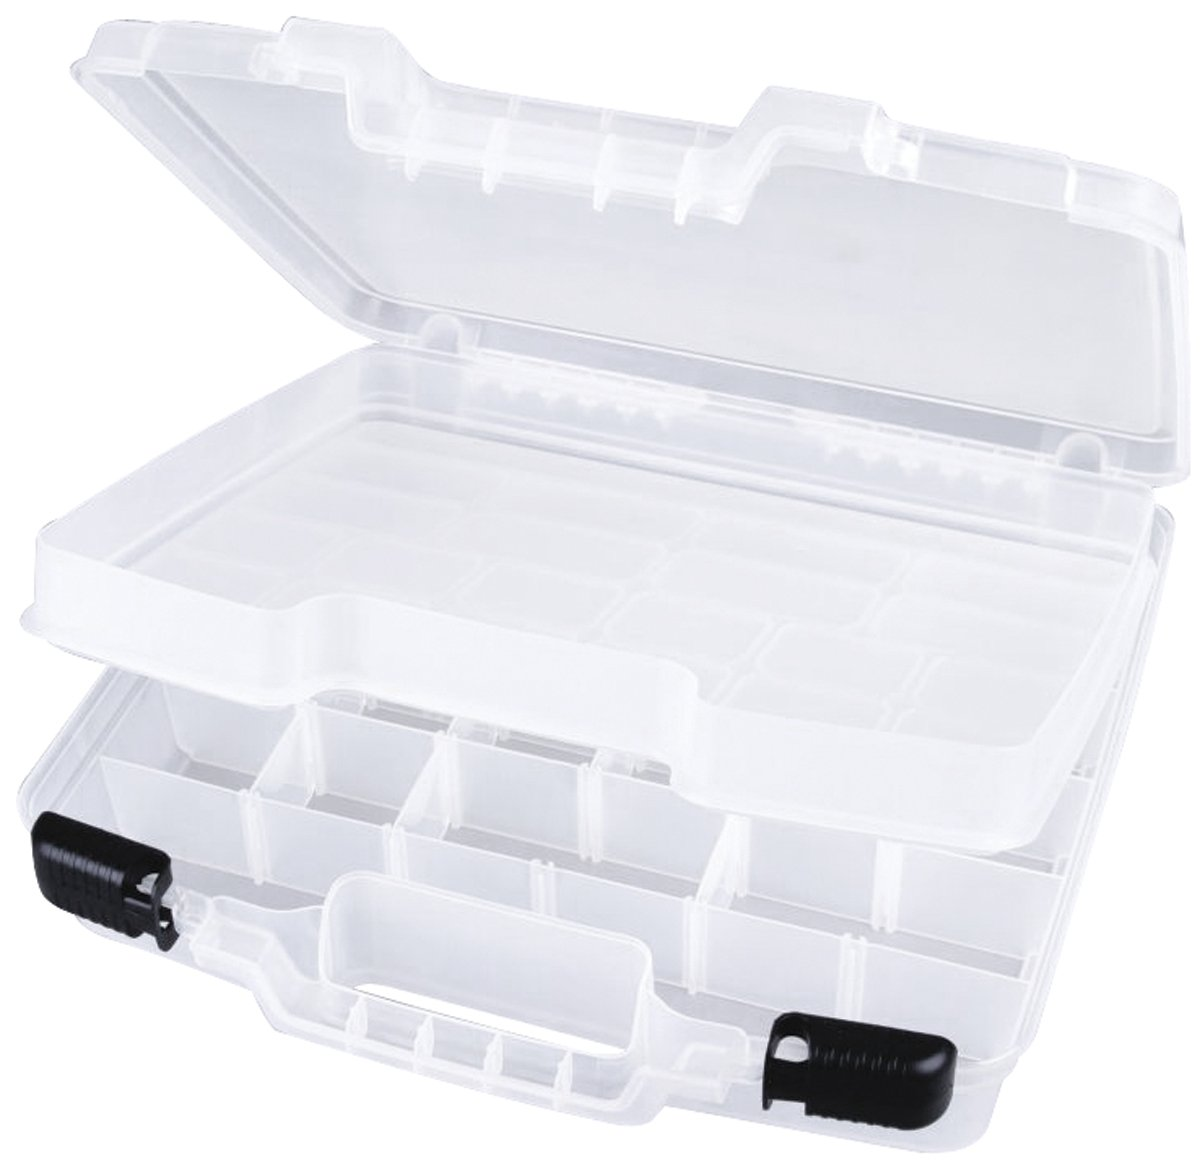 ArtBin Quick View Deep Base Carrying Case, Divided Base with Lift Out Tray- Clear, Great for Coloring Book Storage, 6962AB